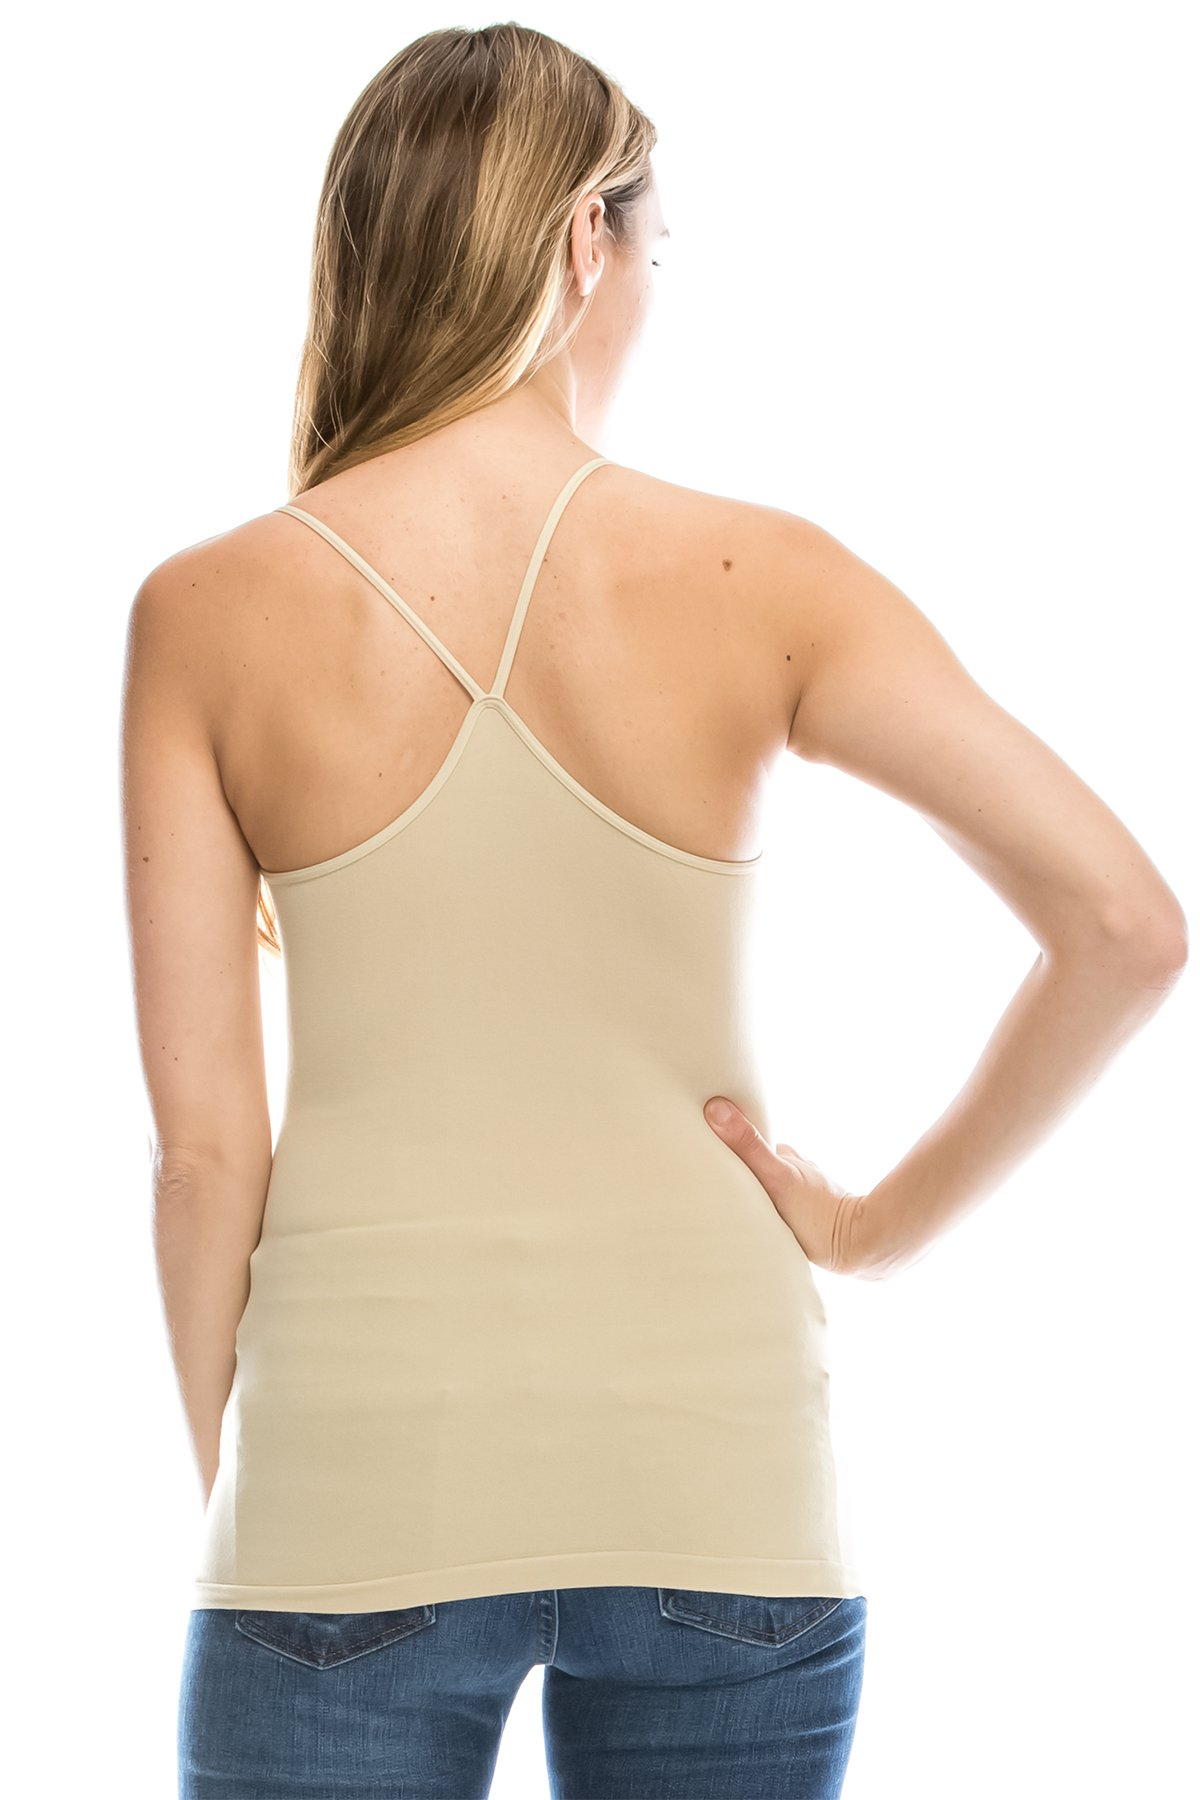 Kurve American Made Y-Back Spaghetti Strap Basic Cami, UV Protective Fabric UPF 50+ (Made With Love In The USA) Medium/Large (One Size) Pebble